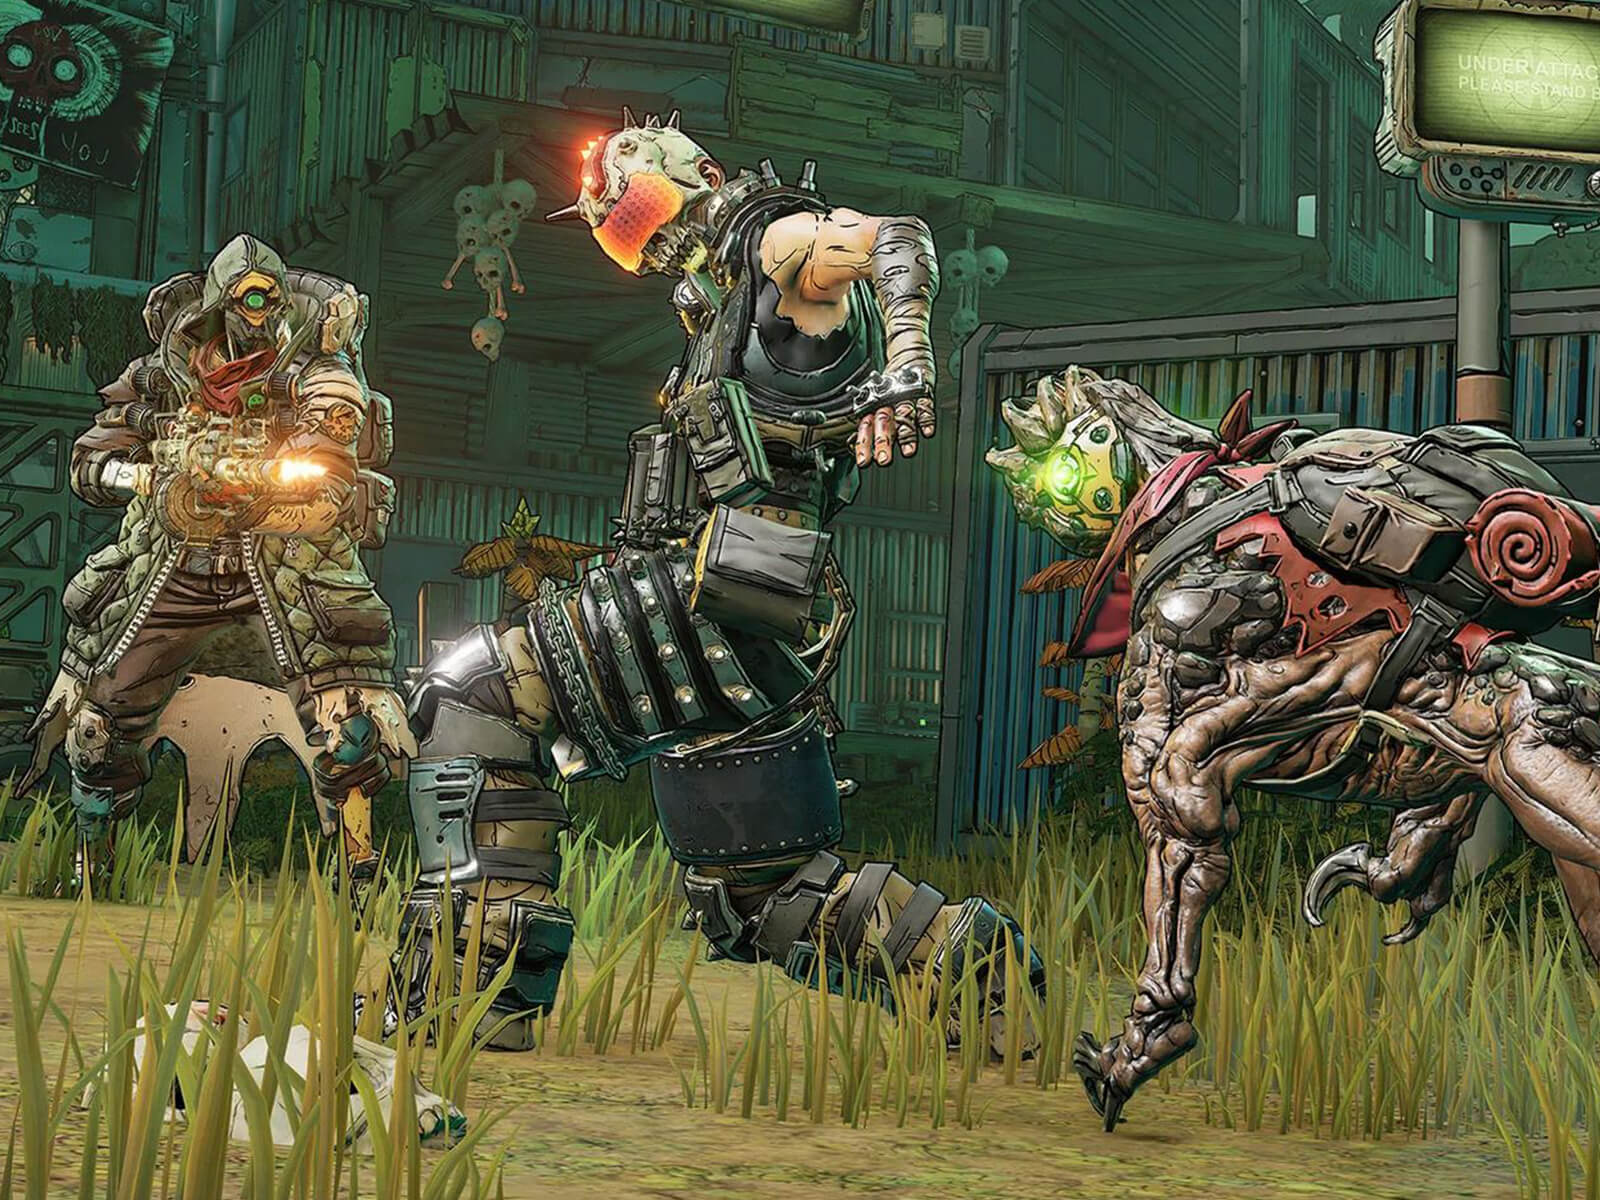 Borderlands 3 character FL4K and their dog companion surround an enemy.